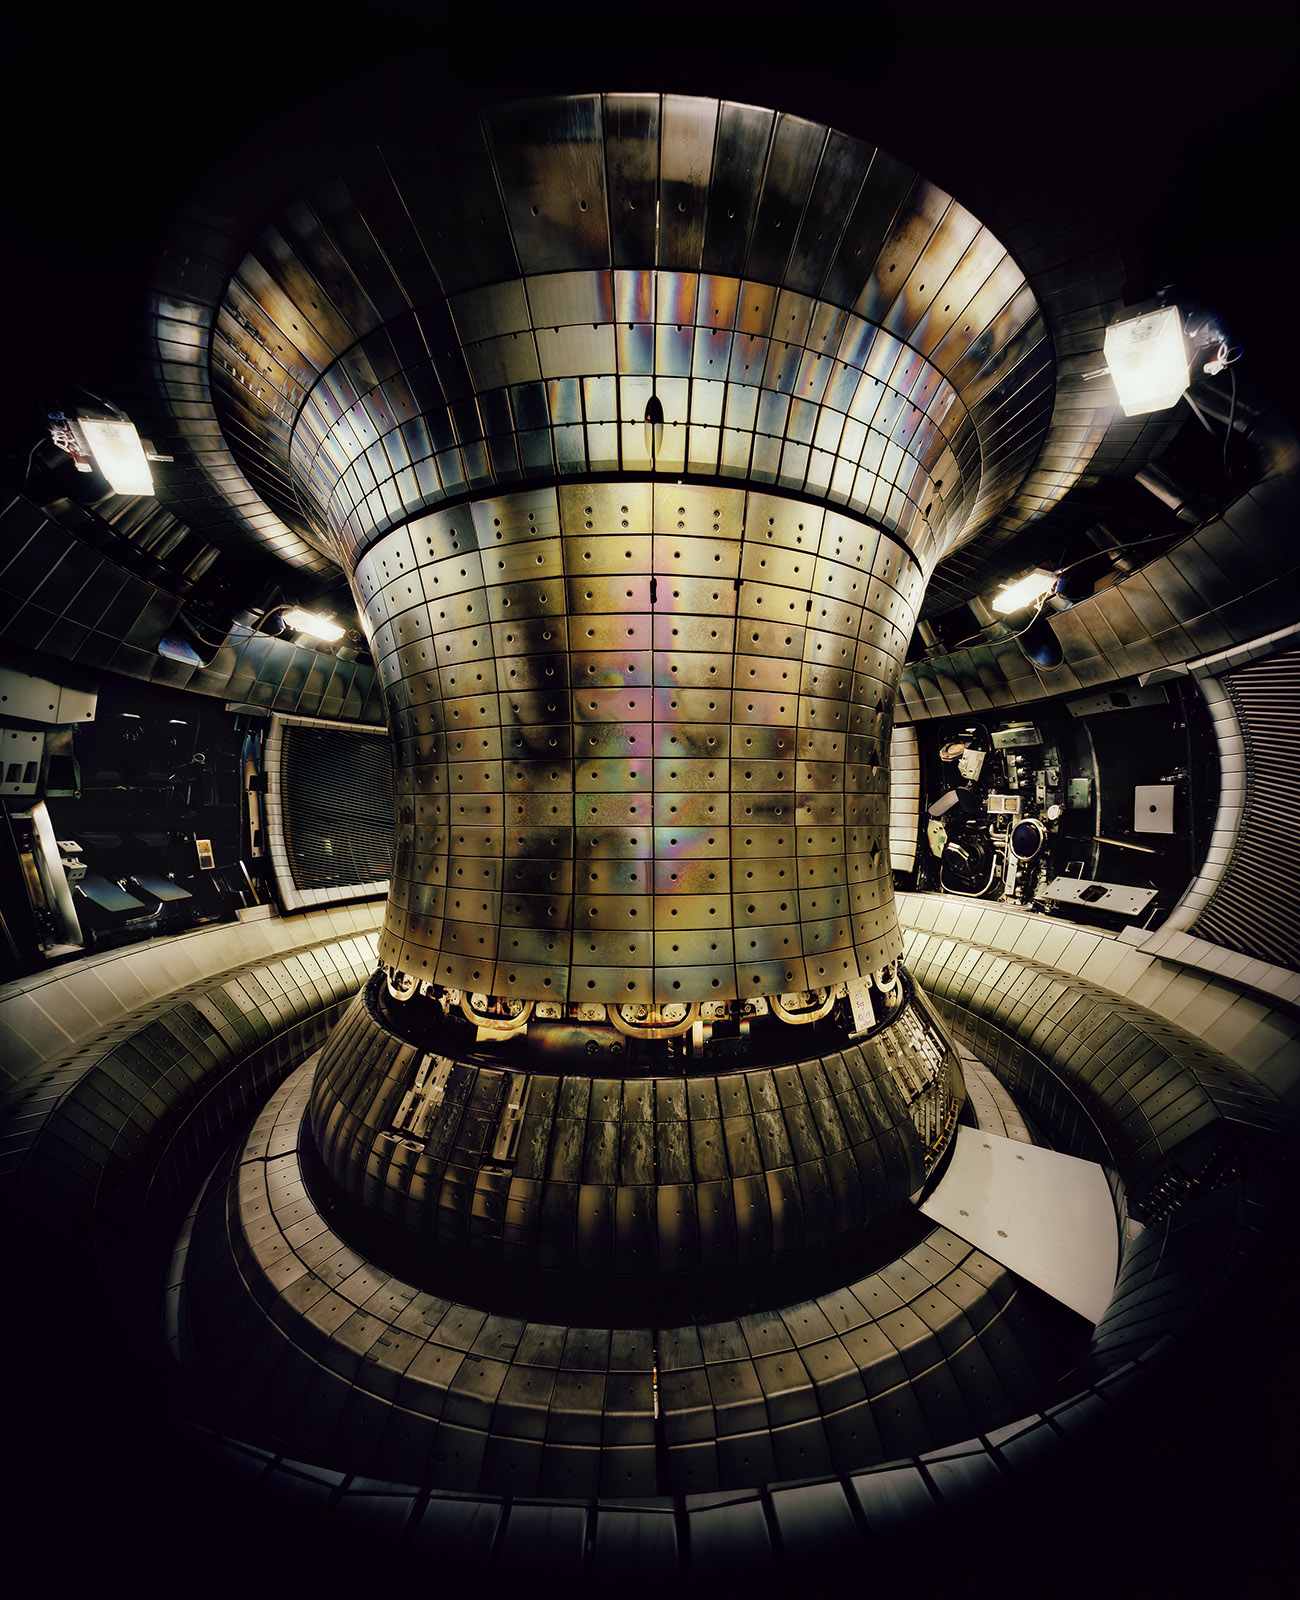 Thomas Struth, Tokamak Asdex Upgrade Interior 1, Max Planck IPP, Garching, 2010